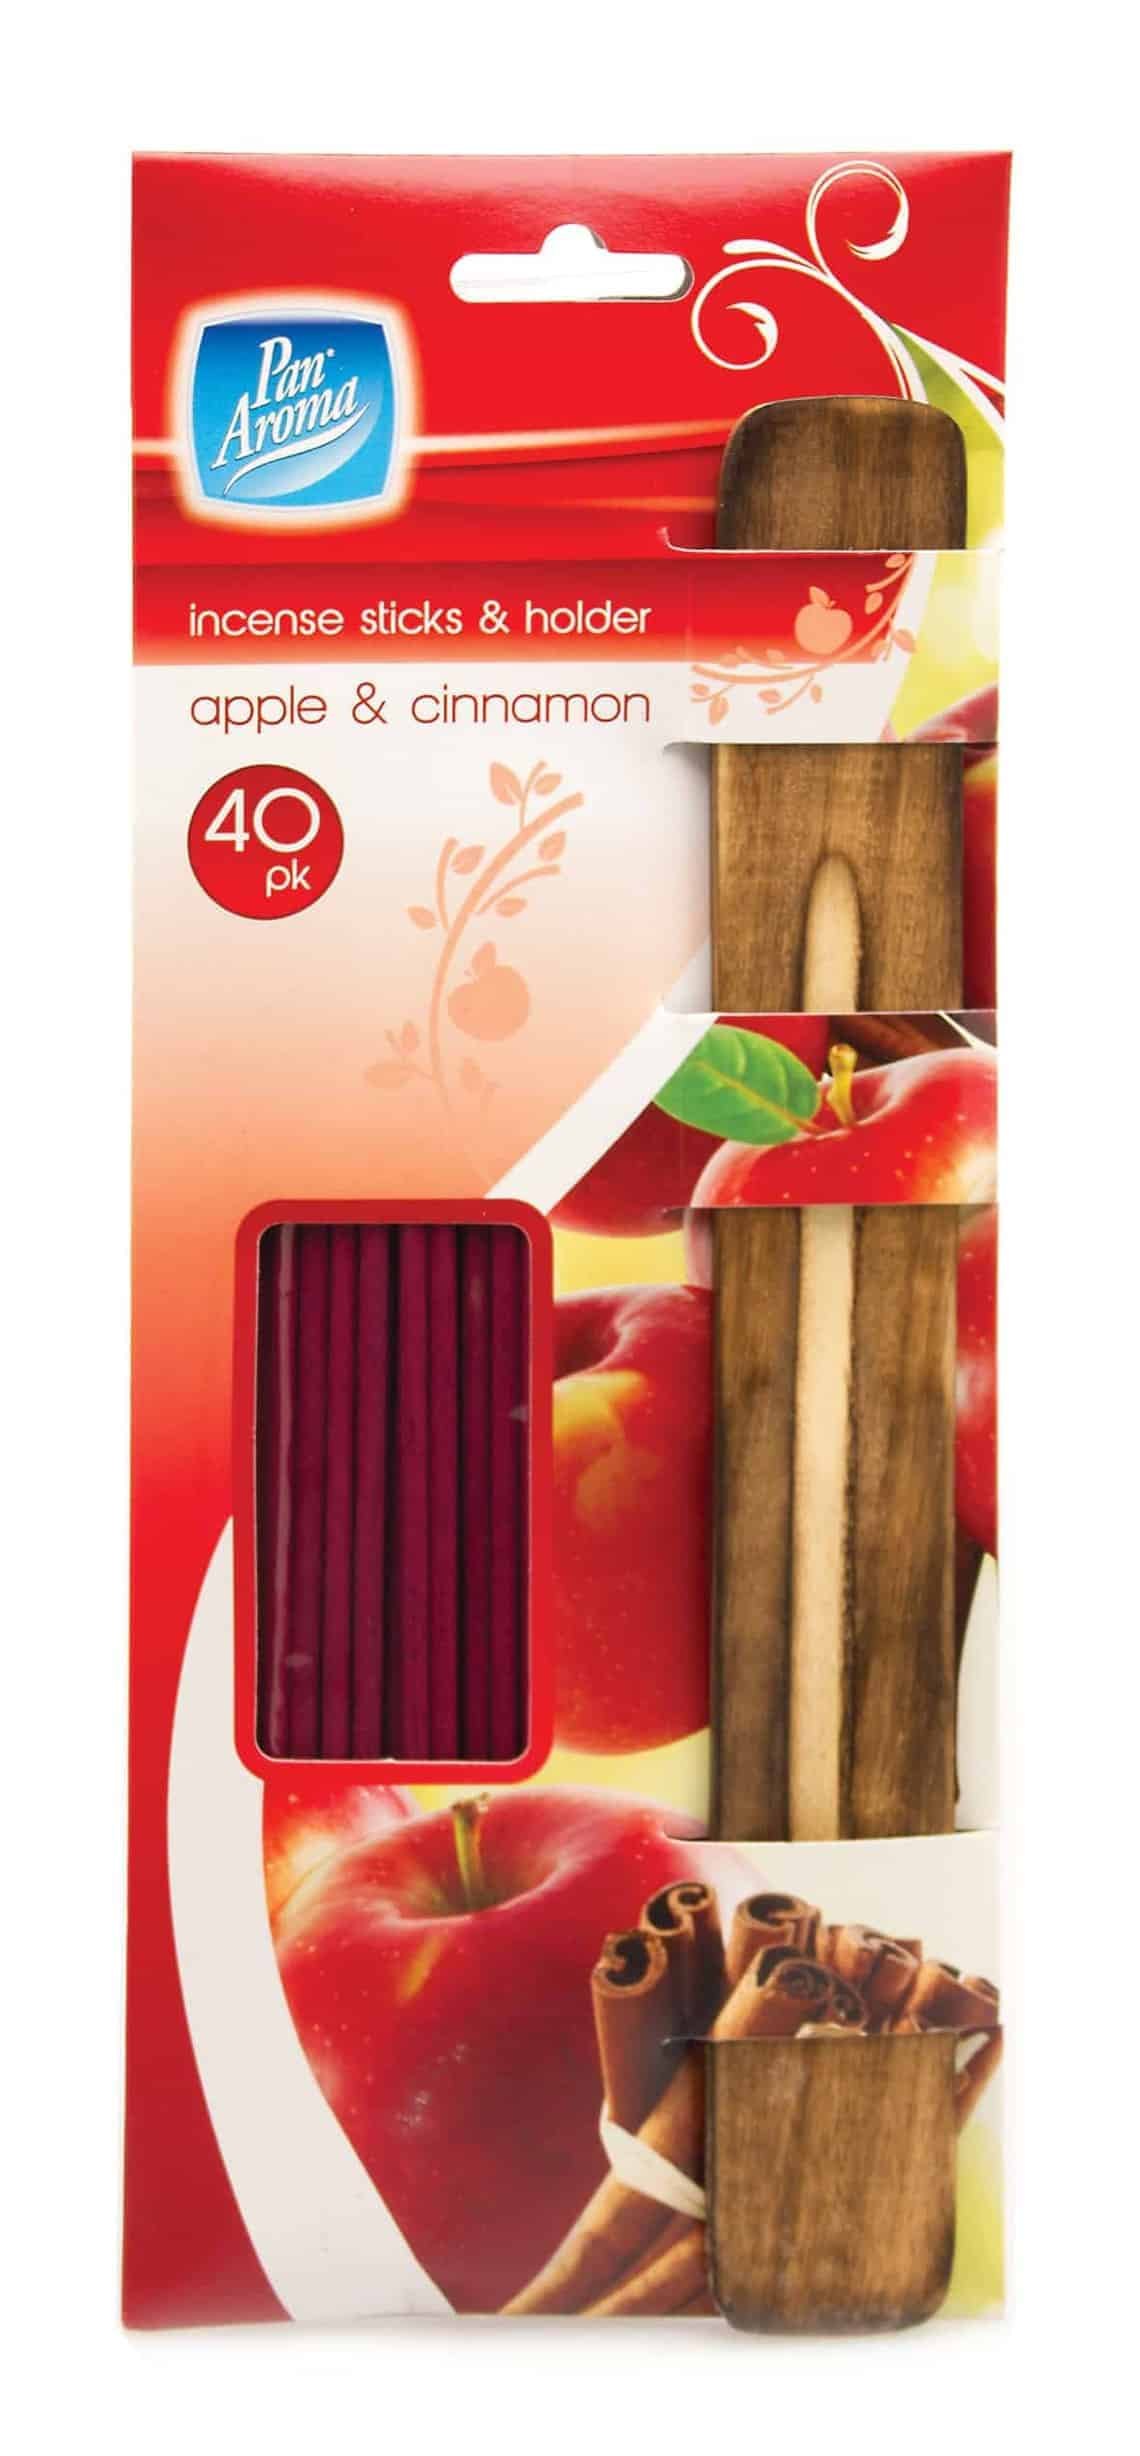 Pan Aroma Apple & Cinnamon Incense Sticks & Holder 40Pk